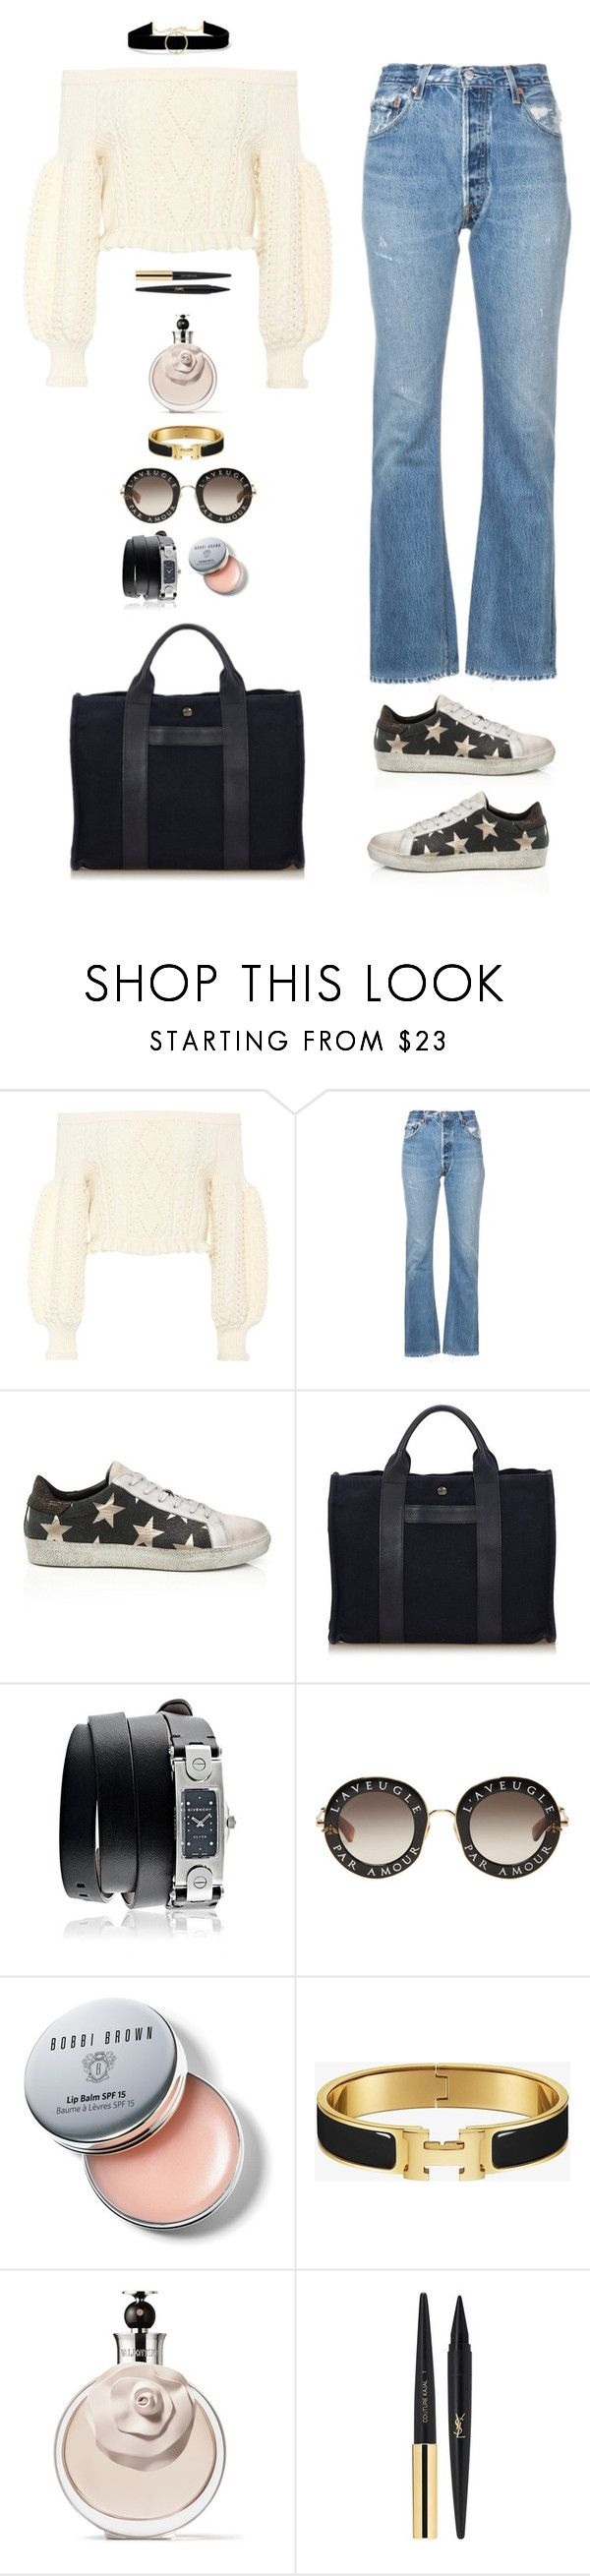 """""""Viborg"""" by xoxomuty on Polyvore featuring Valentino, RE/DONE, Hermès, Givenchy, Gucci, Bobbi Brown Cosmetics, Yves Saint Laurent, Anissa Kermiche, ootd and polyvoreOOTD"""